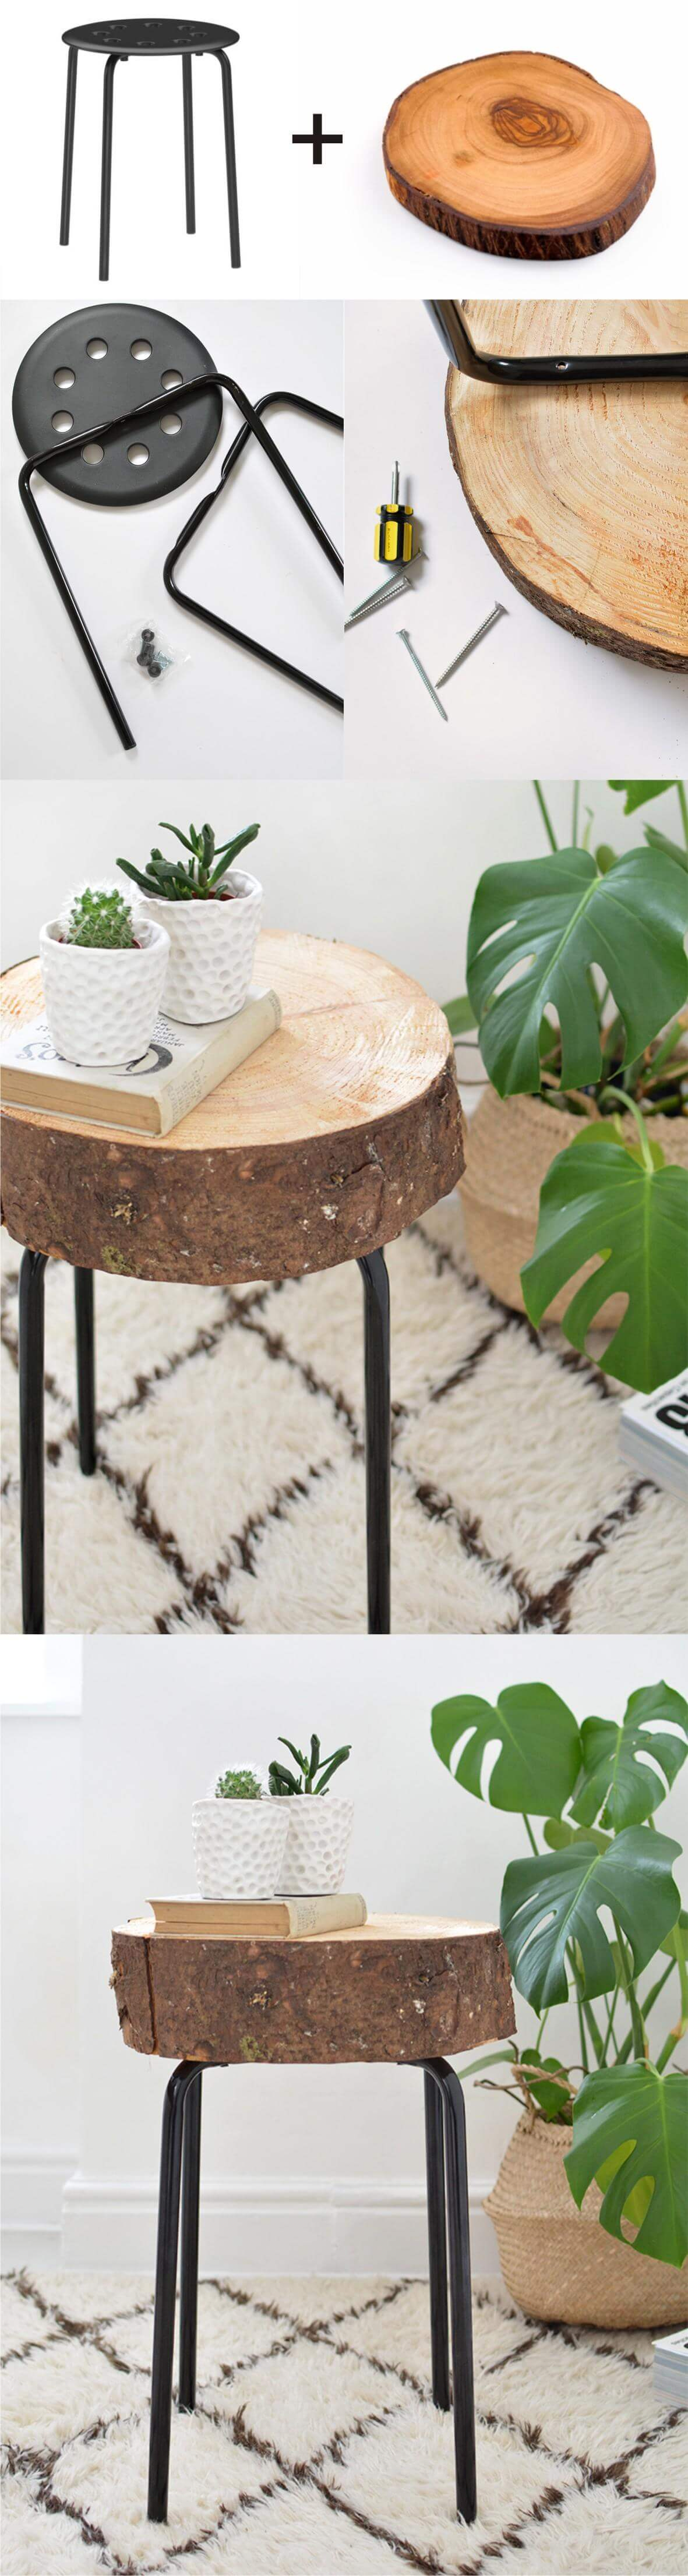 Wooden Side Table Designs 25 Best Diy Side Table Ideas And Designs For 2019